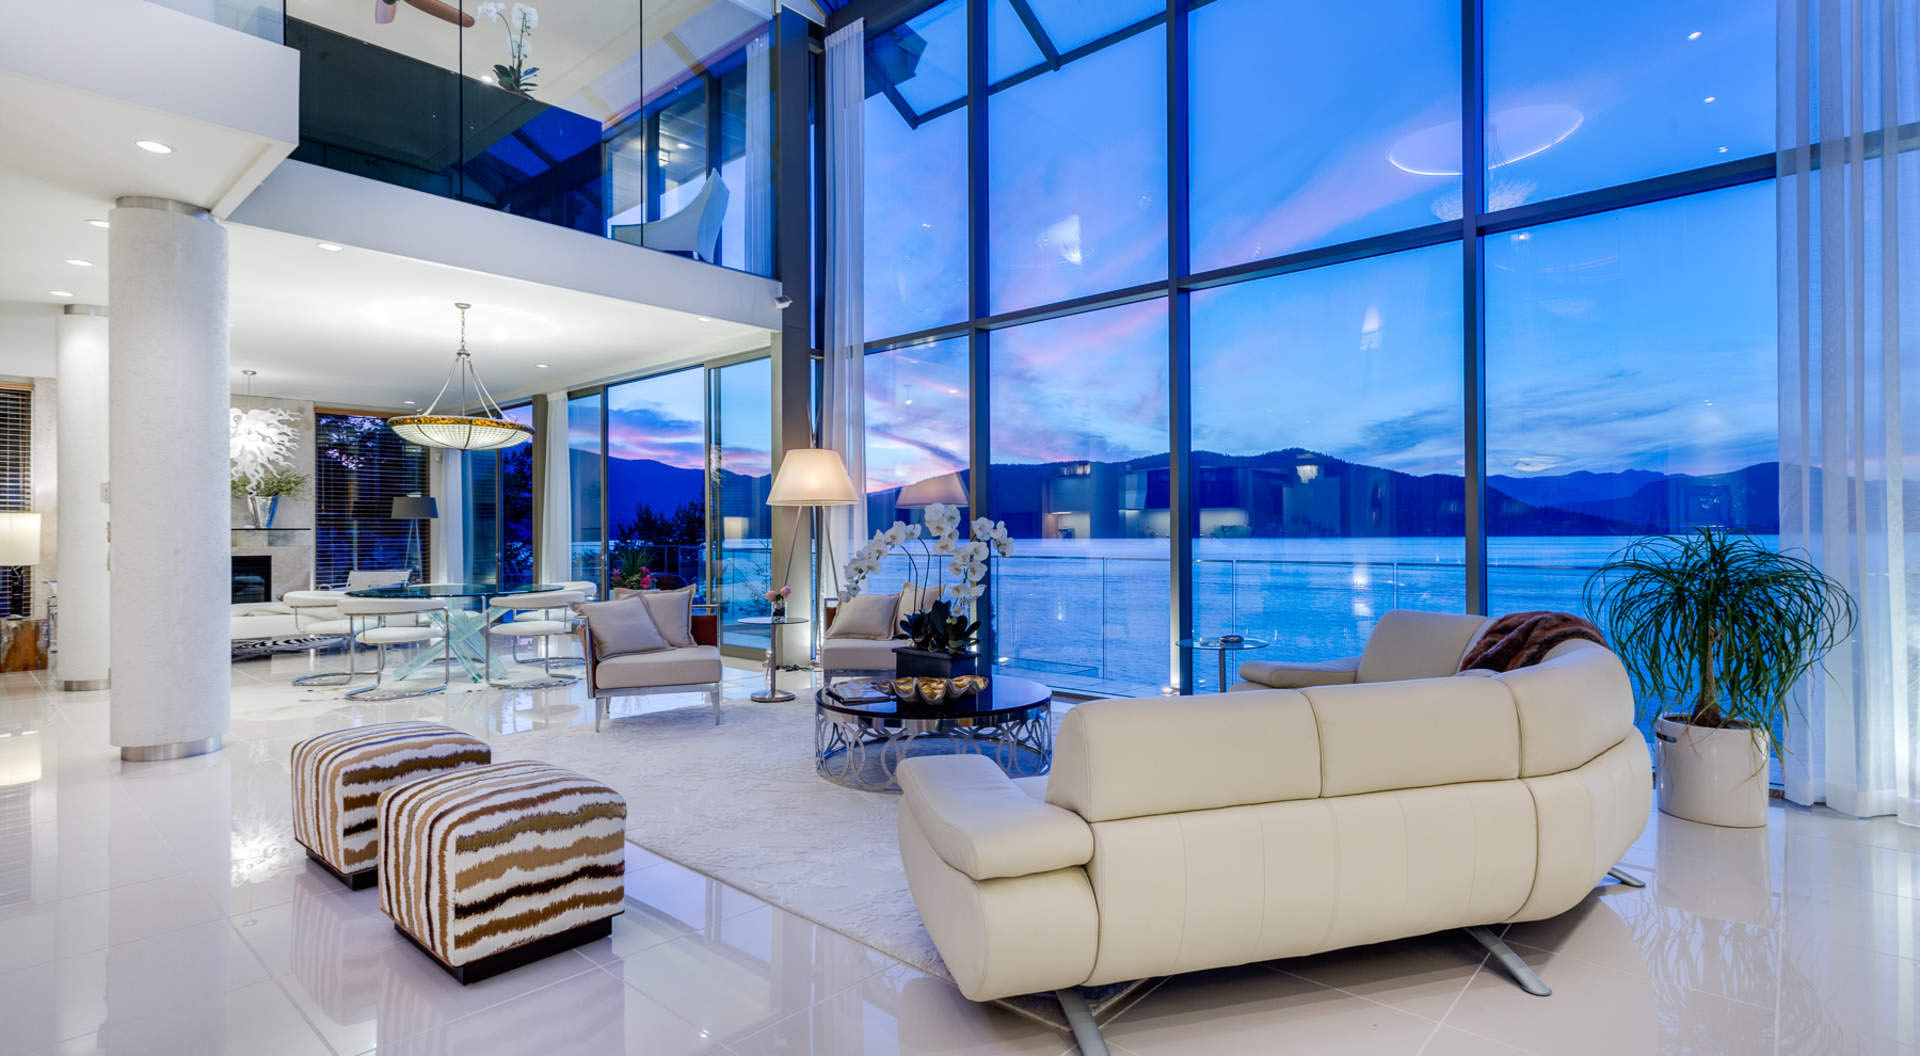 Exquisite Contemporary Waterfront Home With Dramatic